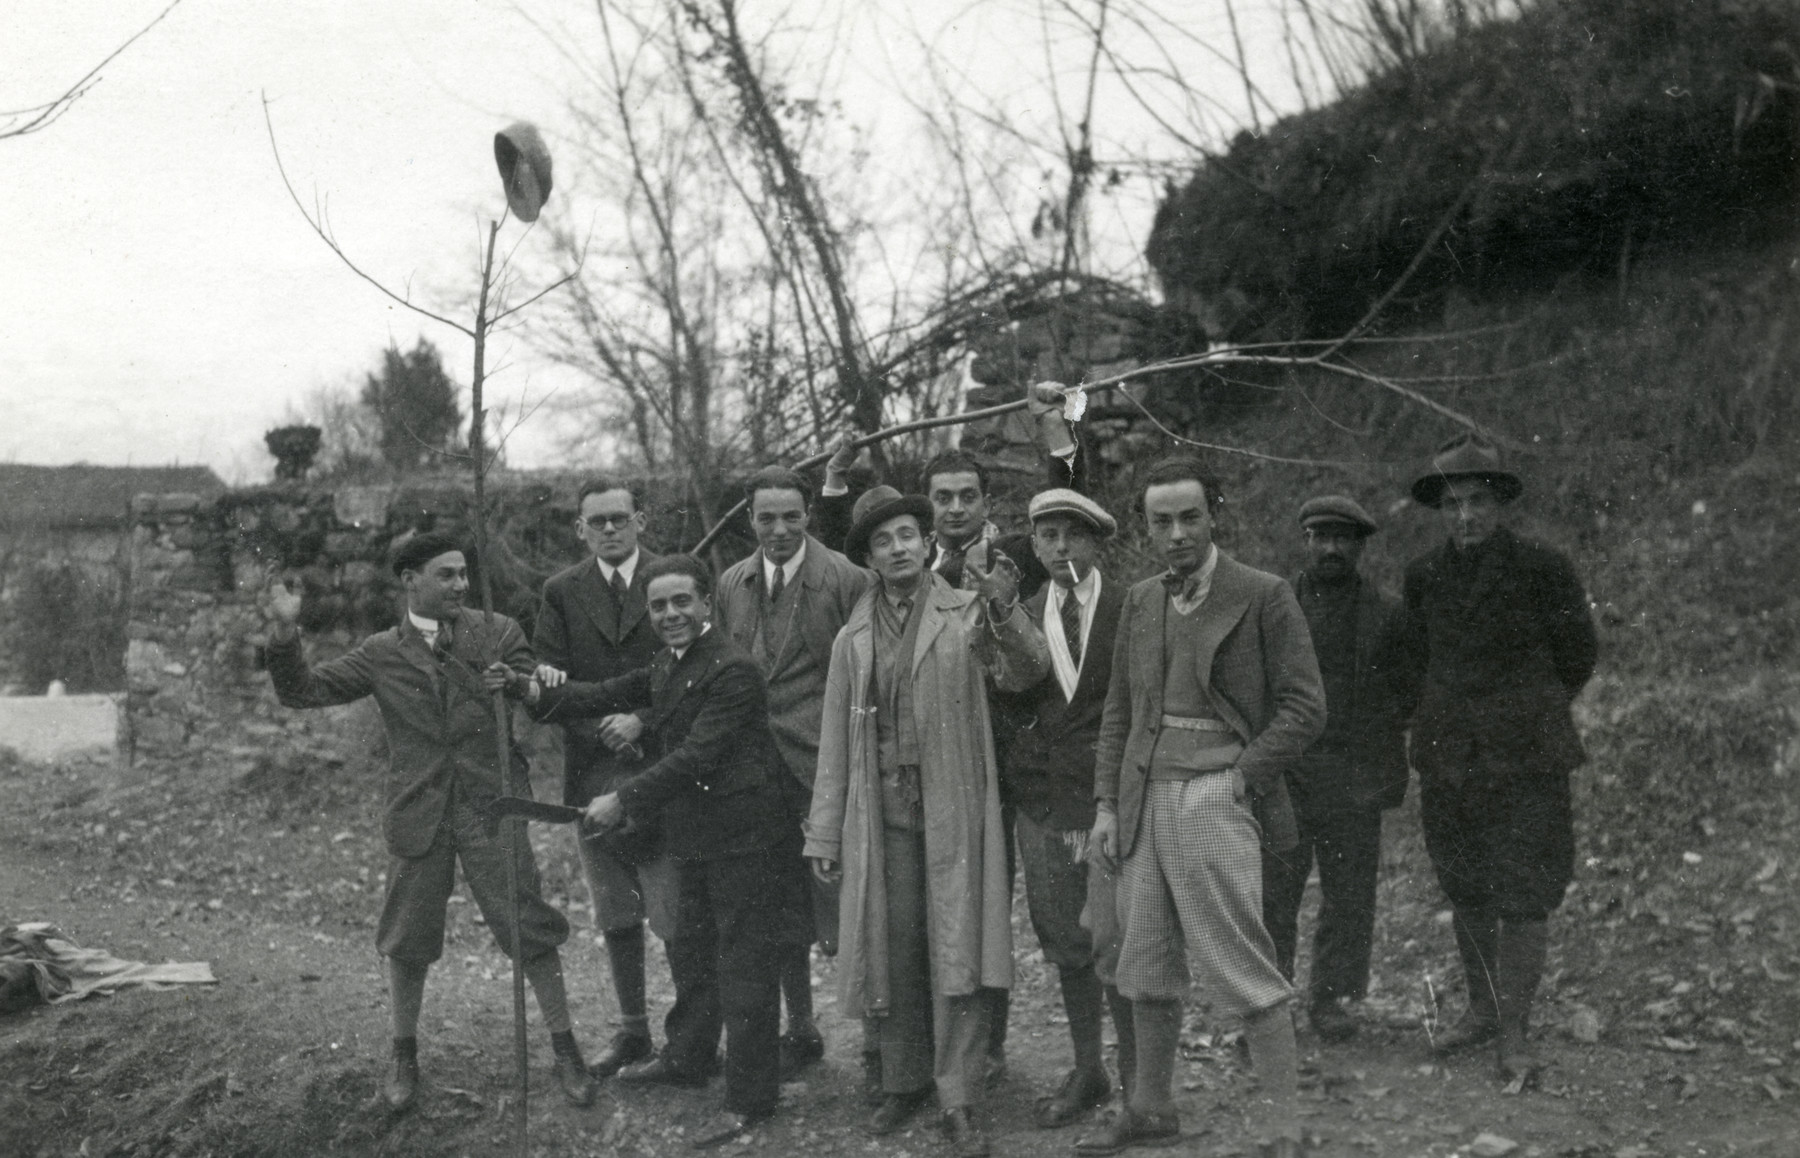 Group portrait of university students on an outing.  Salomon Finci, the donor's father, stands in the back holding up a tree branch during his time as a chemical engineeringstudent.